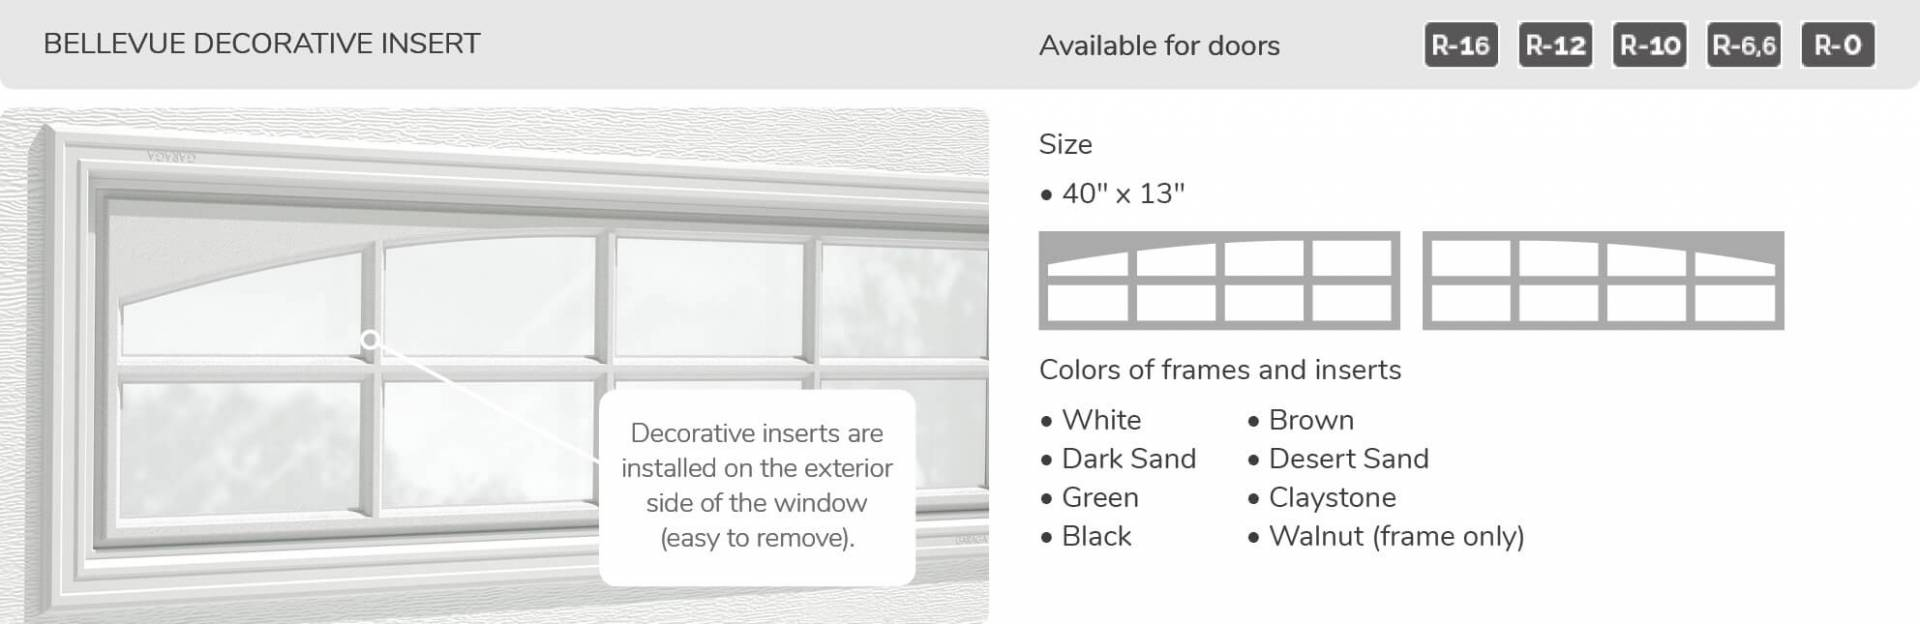 Bellevue Decorative Insert, 40' x 13', available for doors: R-16, R-12, R-10, R-6.6, R-0